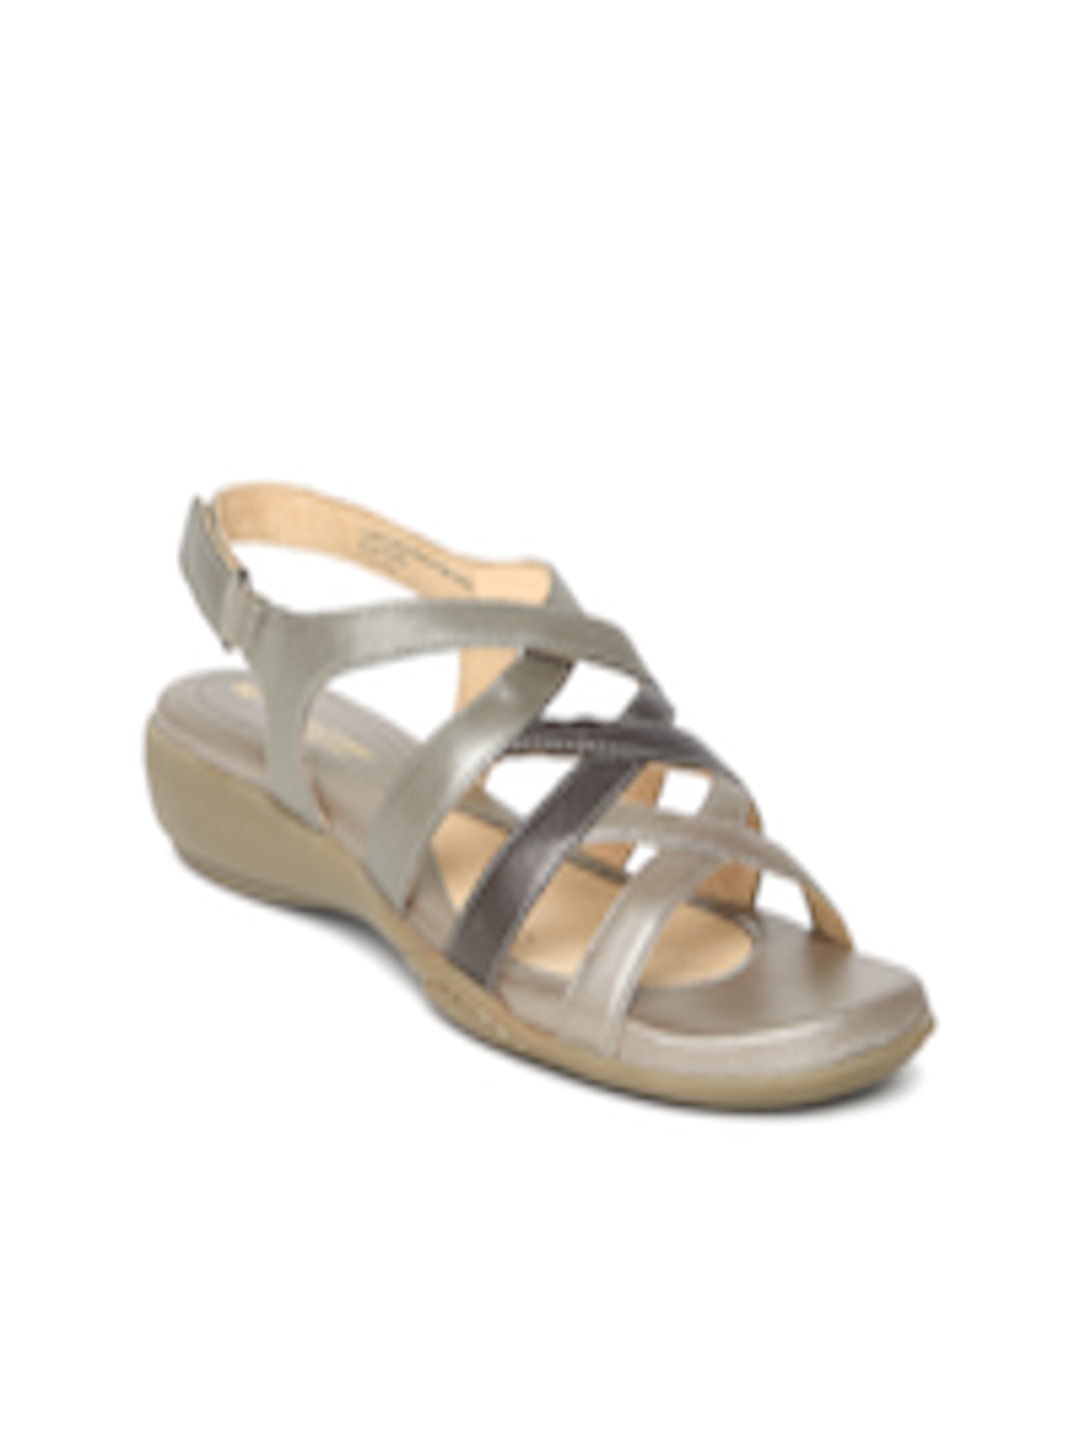 abd075b0278e Buy Naturalizer By Bata Women Bronze Toned   Brown Leather Sandals - Flats  for Women 772277